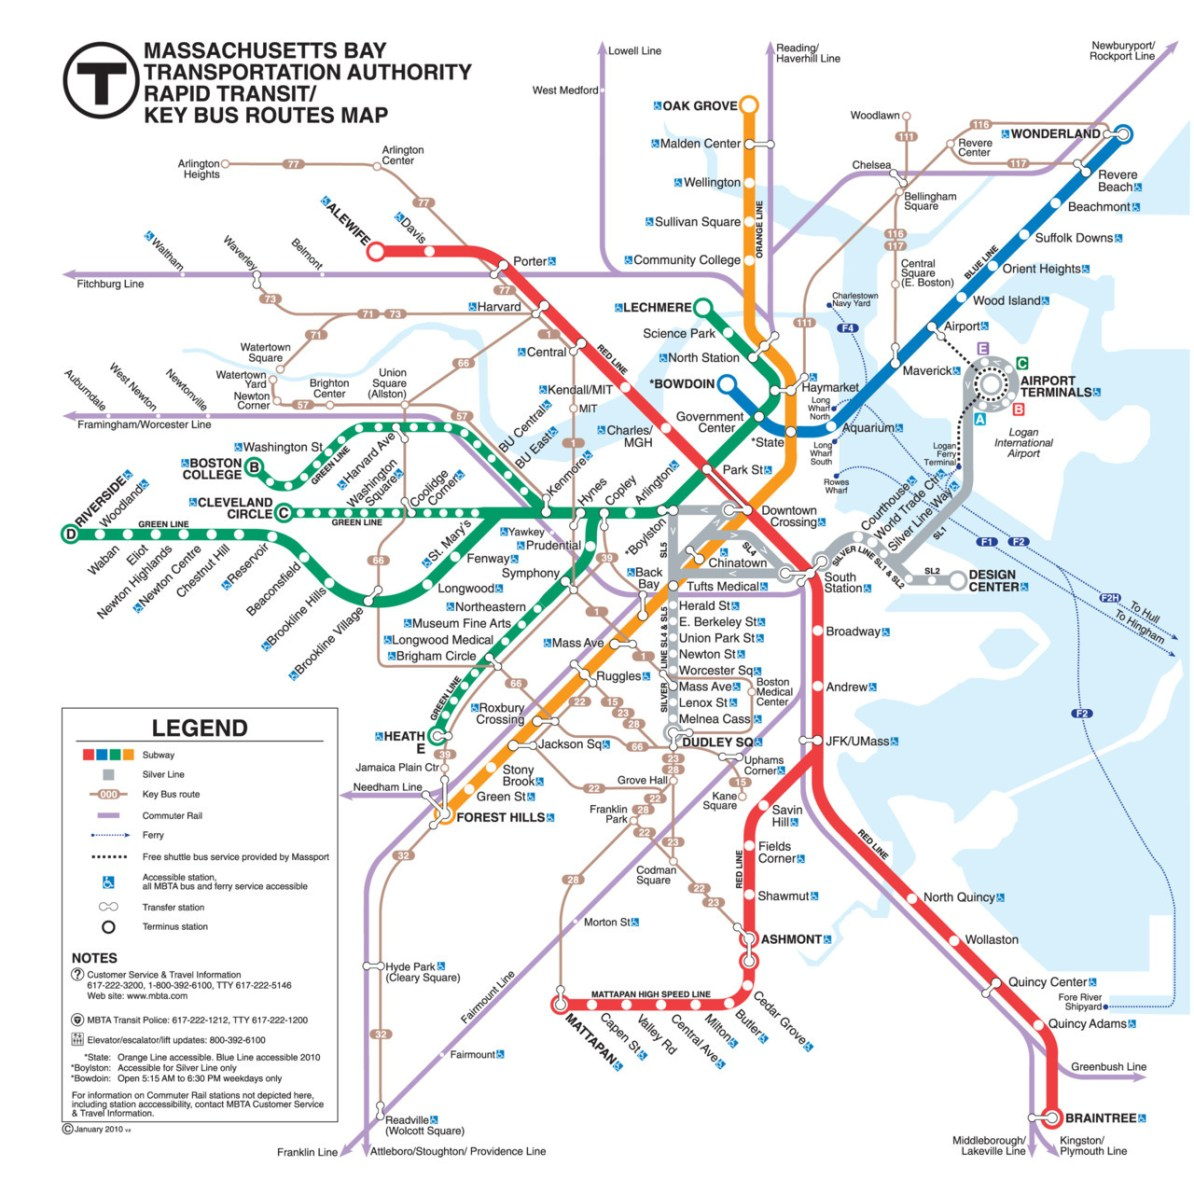 Alewife Subway Map.Transit Maps Official Map Boston Mbta Rapid Transit Key Bus Routes